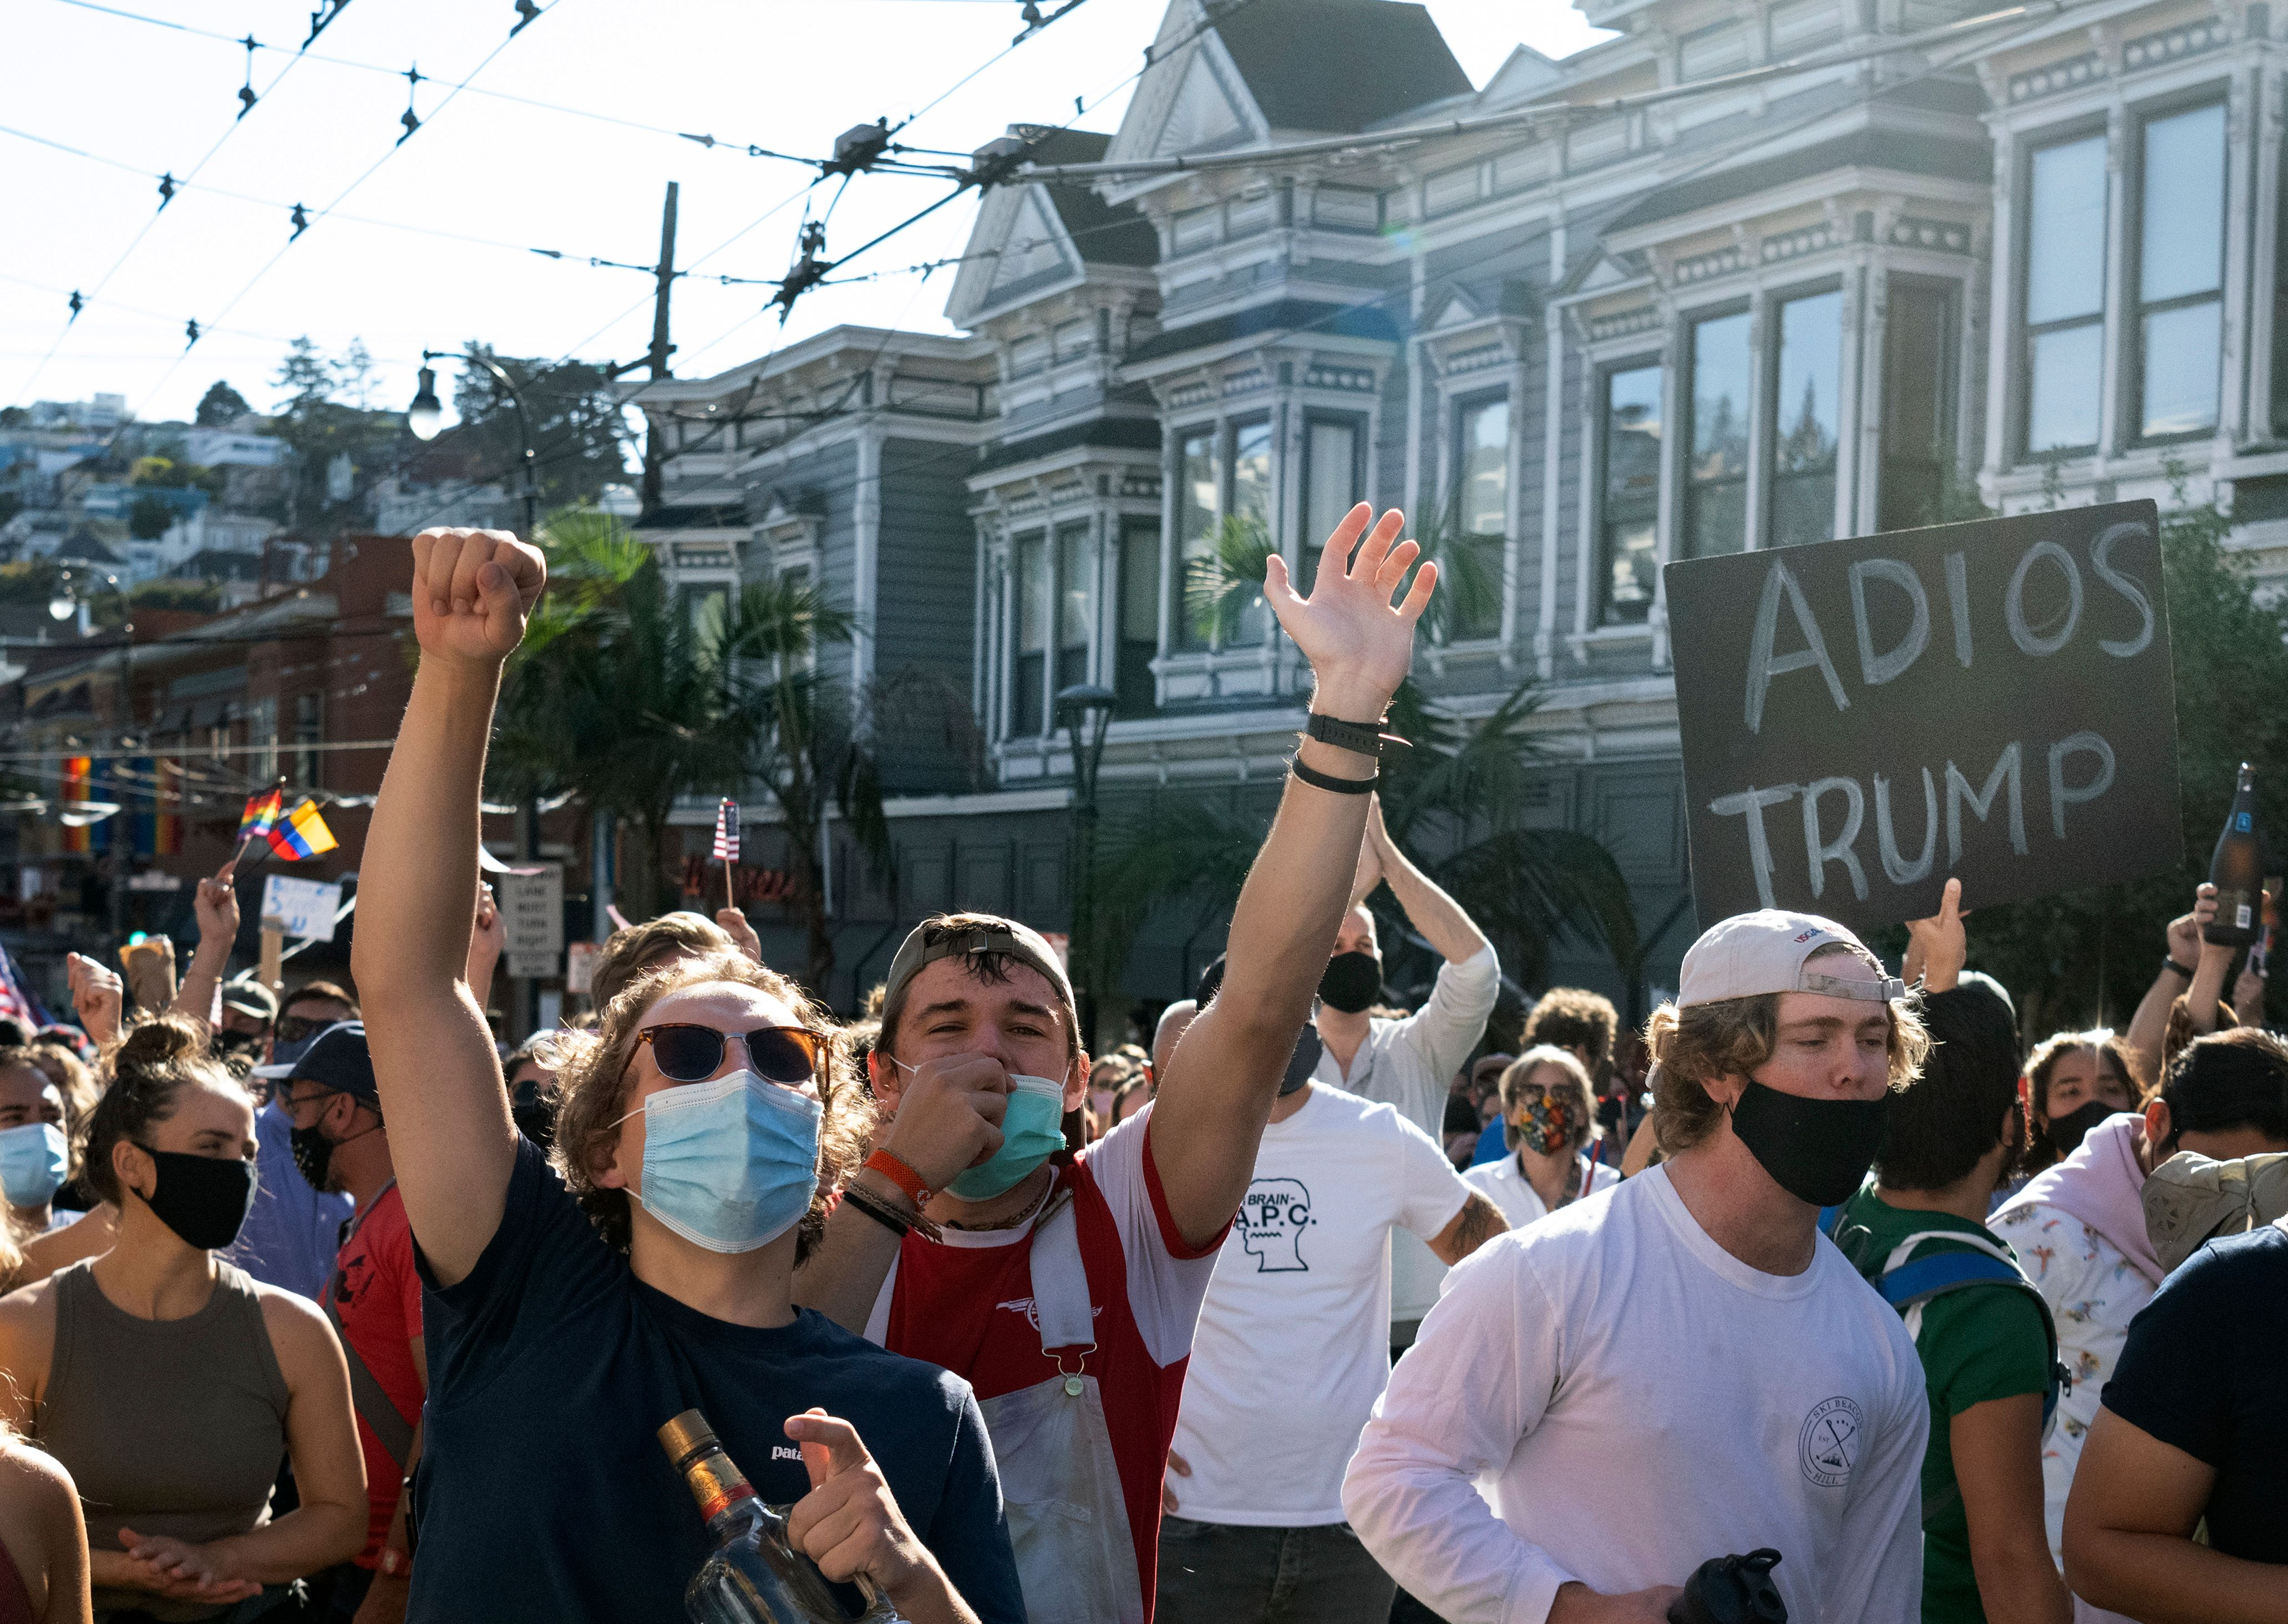 Demonstrators celebrate Biden's victory in the Castro district of San Francisco just after the race was called on November 7.